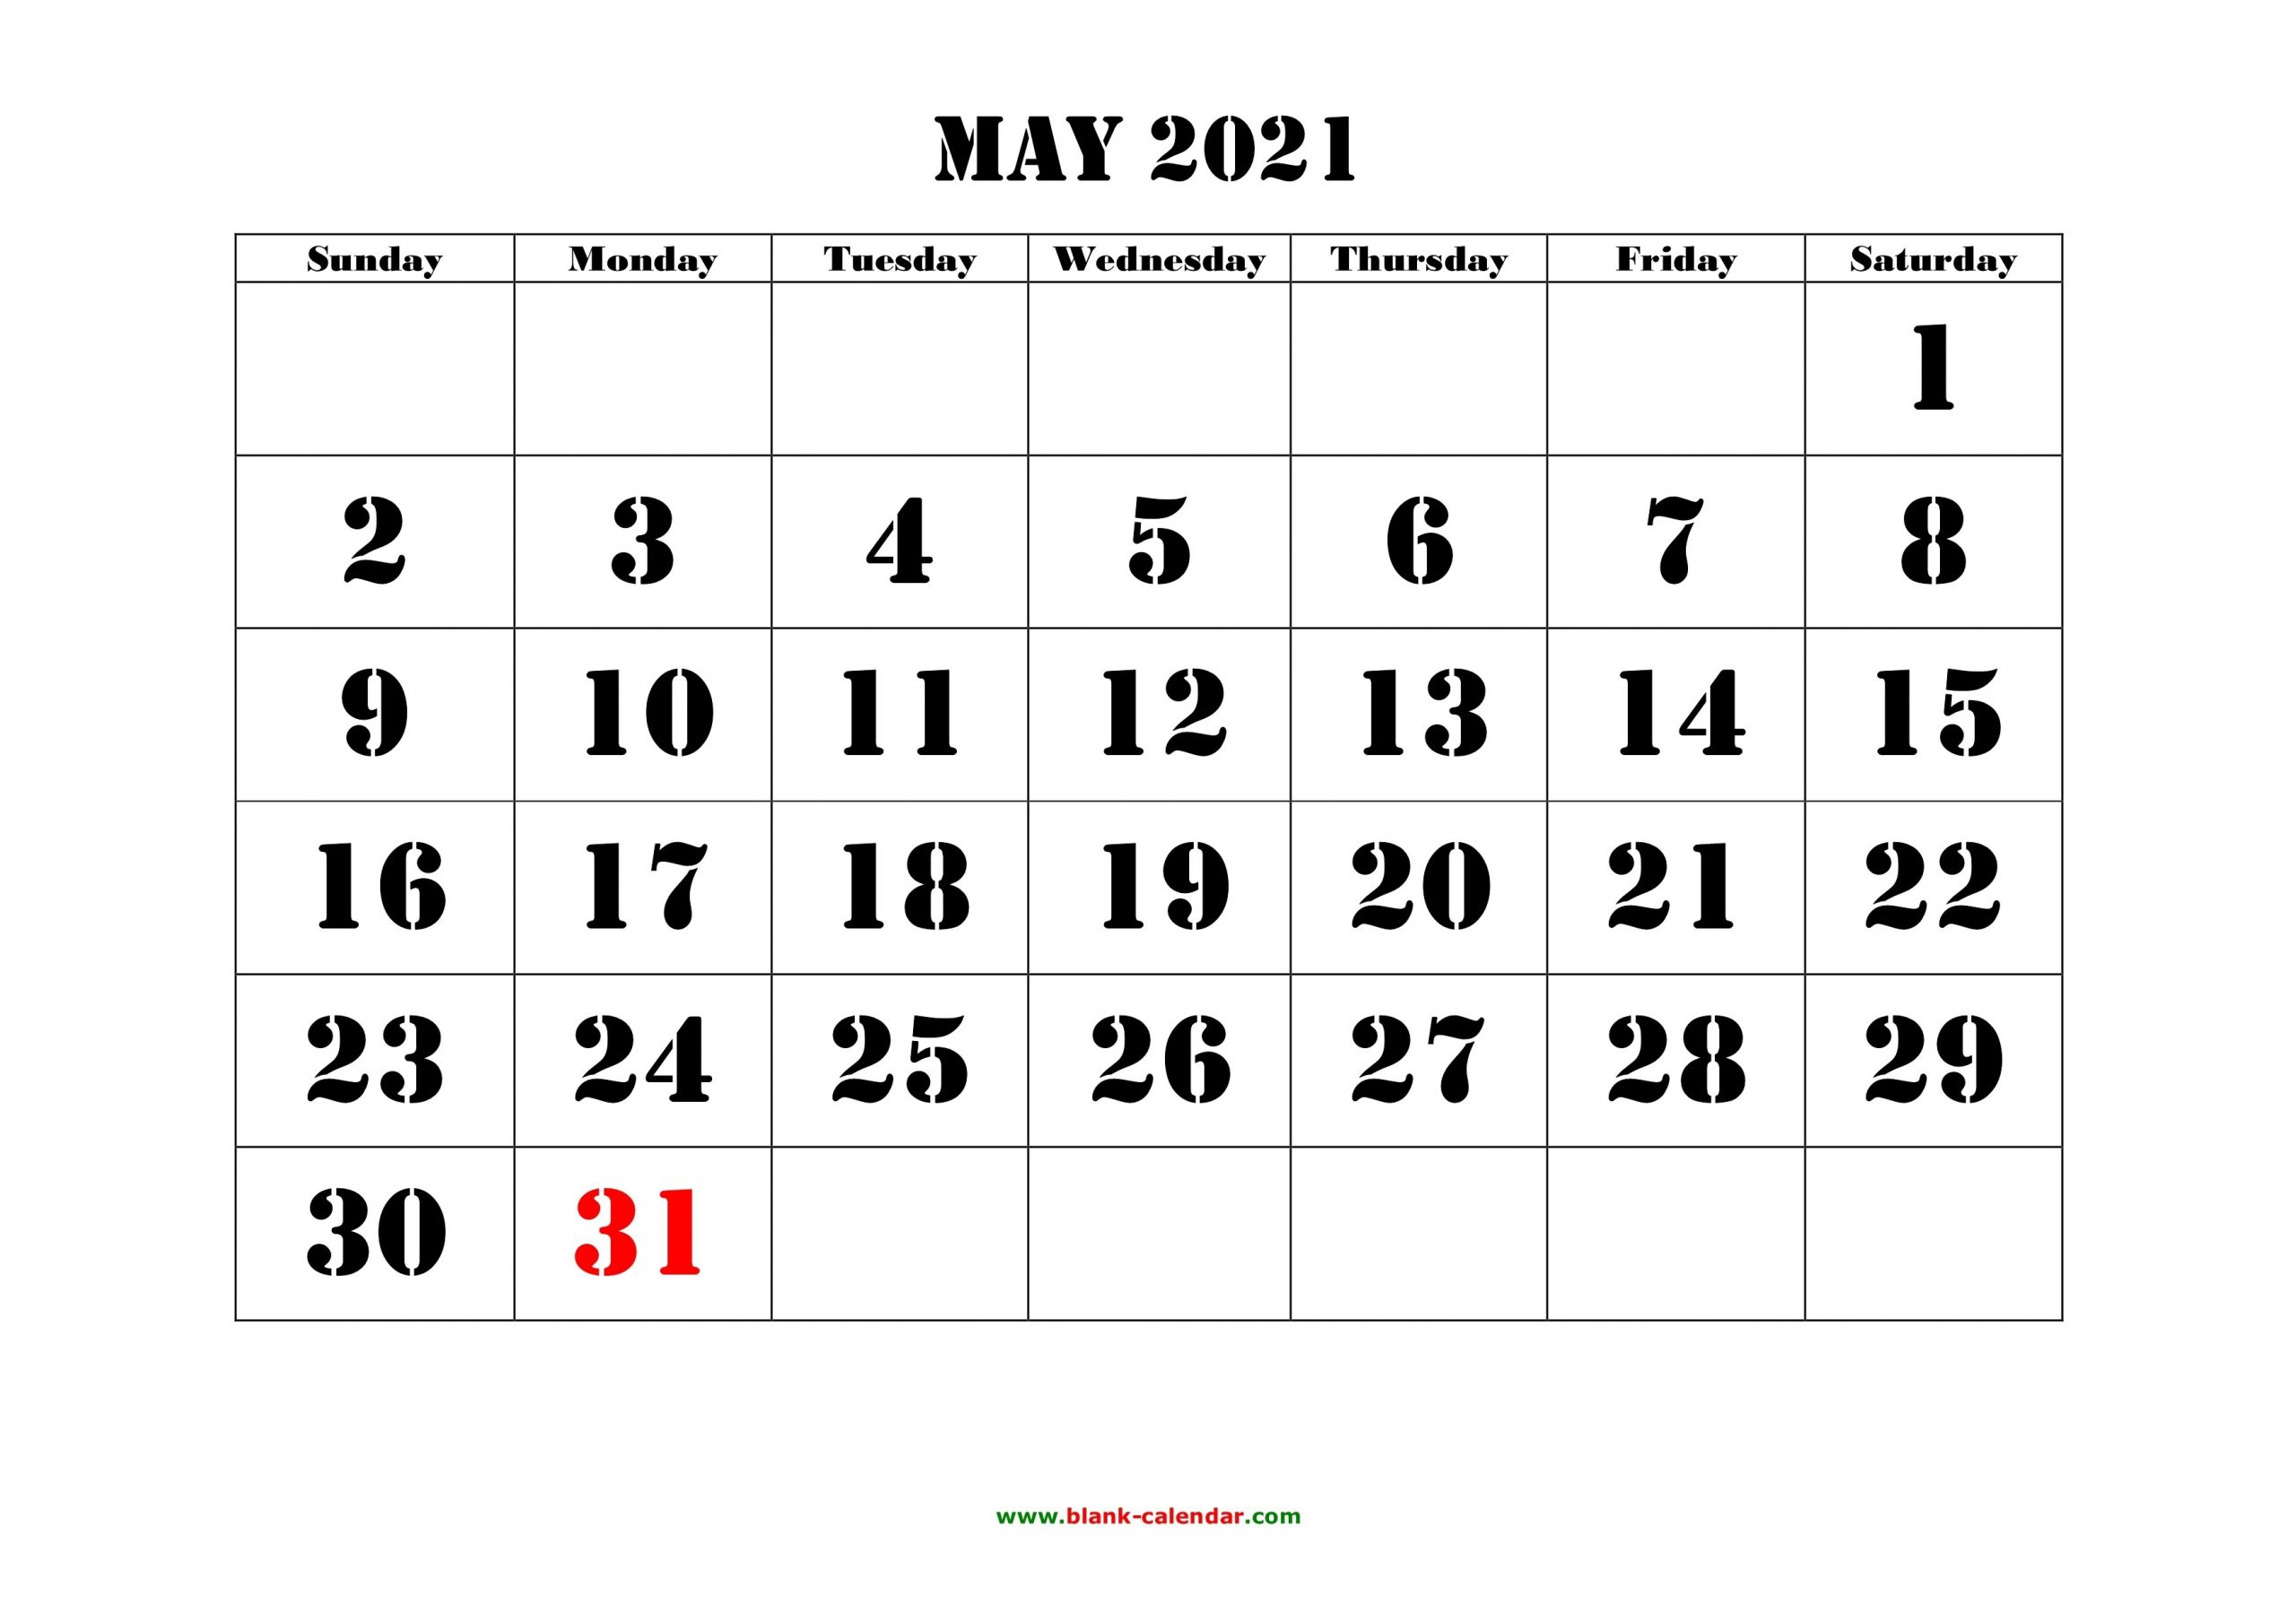 May 2021 Printable Calendar | Free Download Monthly Calendar Templates-Sepetember 2021 Calendar With Big Numbers